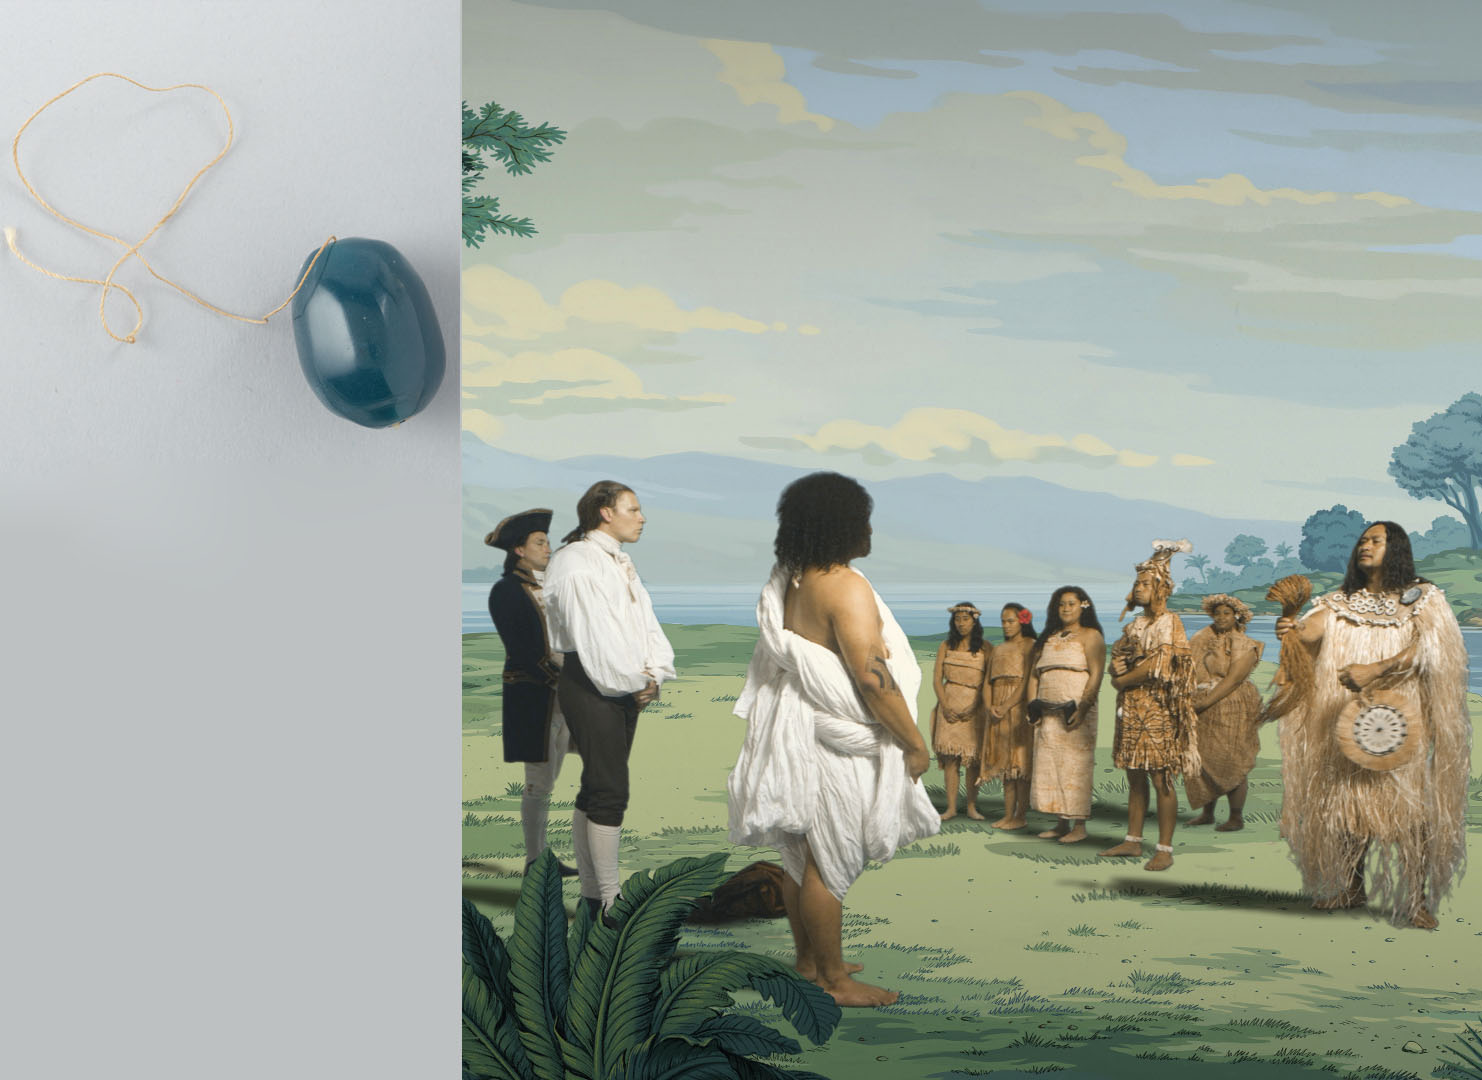 On the left a blue bead, on the right a still from in Pursuit of Venus [infected] showing people trading